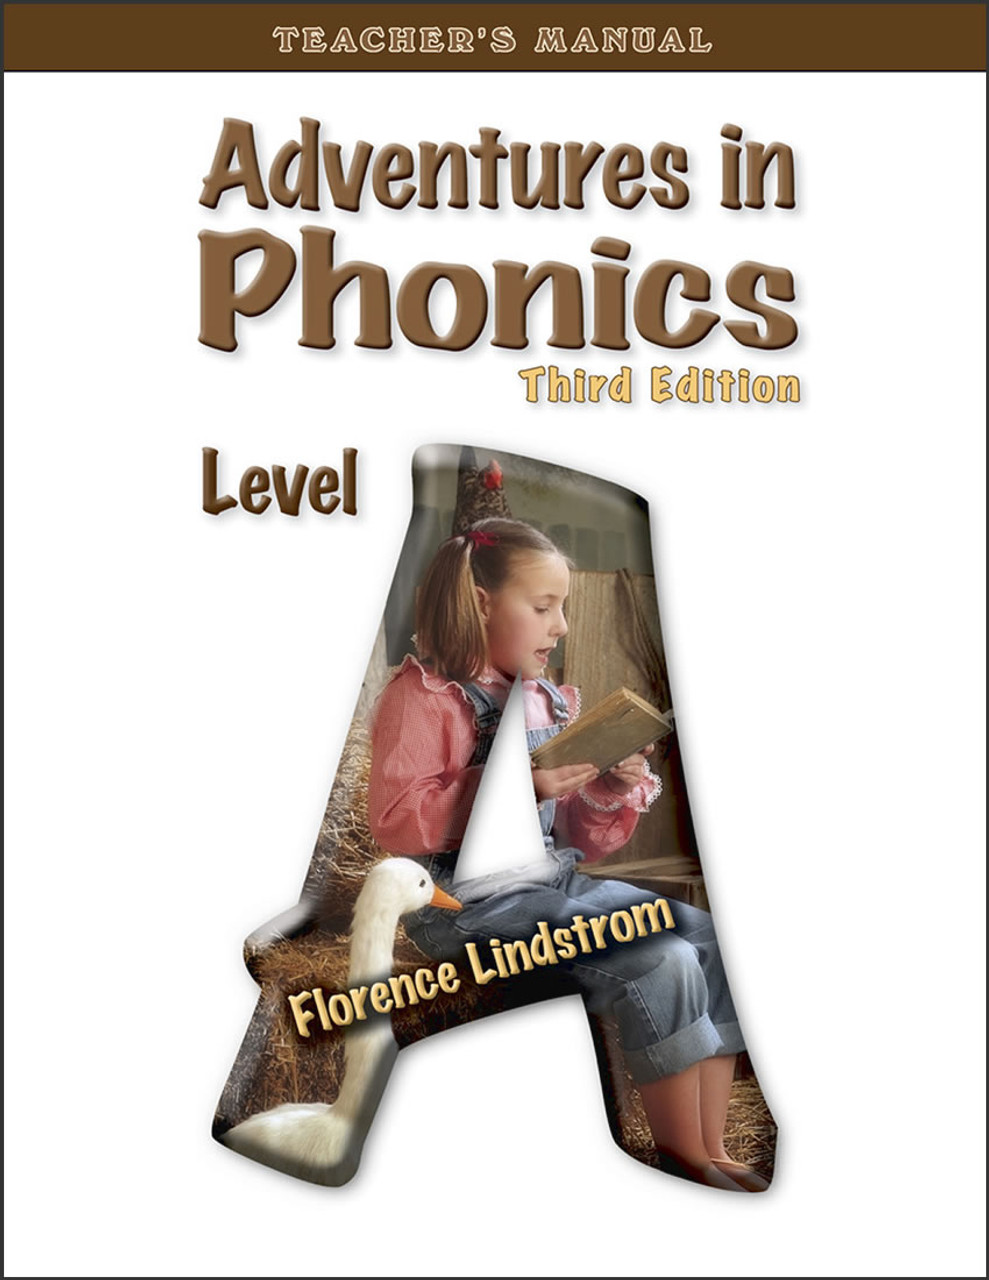 Adventures in Phonics Level A, 3rd edition Teacher's Manual